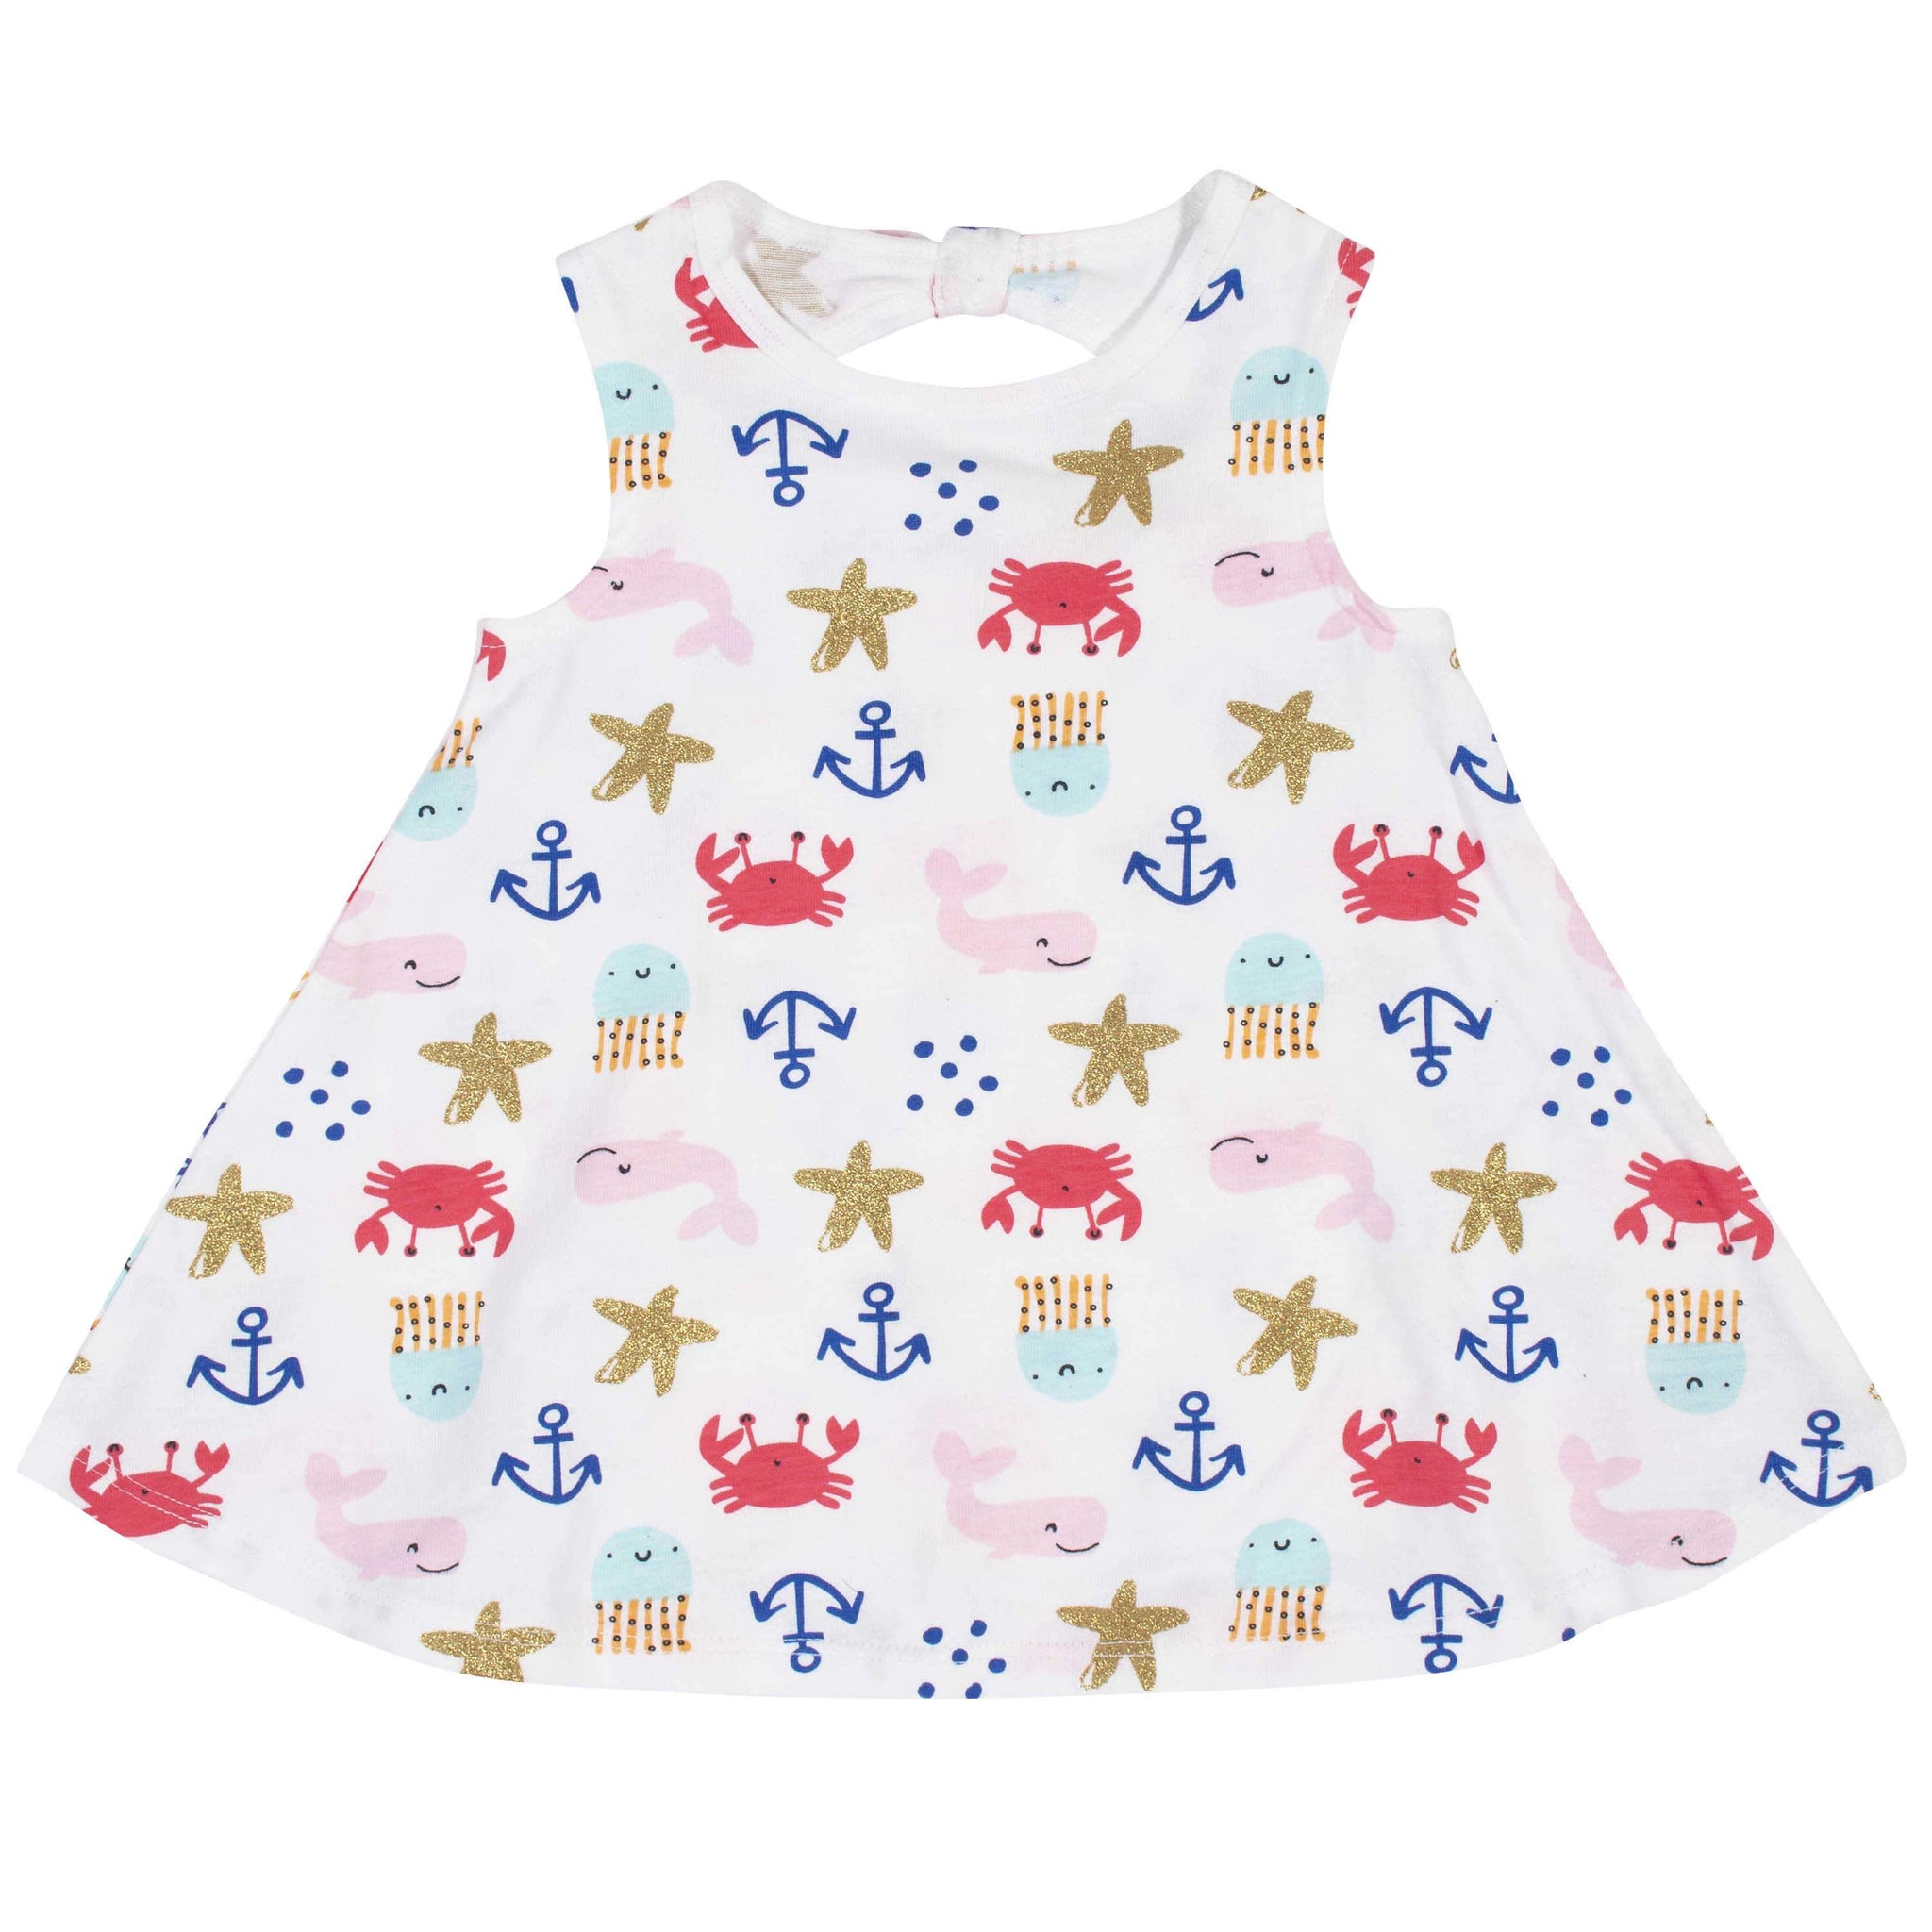 3-Piece Toddler Girls' Sea creatures Dress, Diaper Cover, and Hat Set